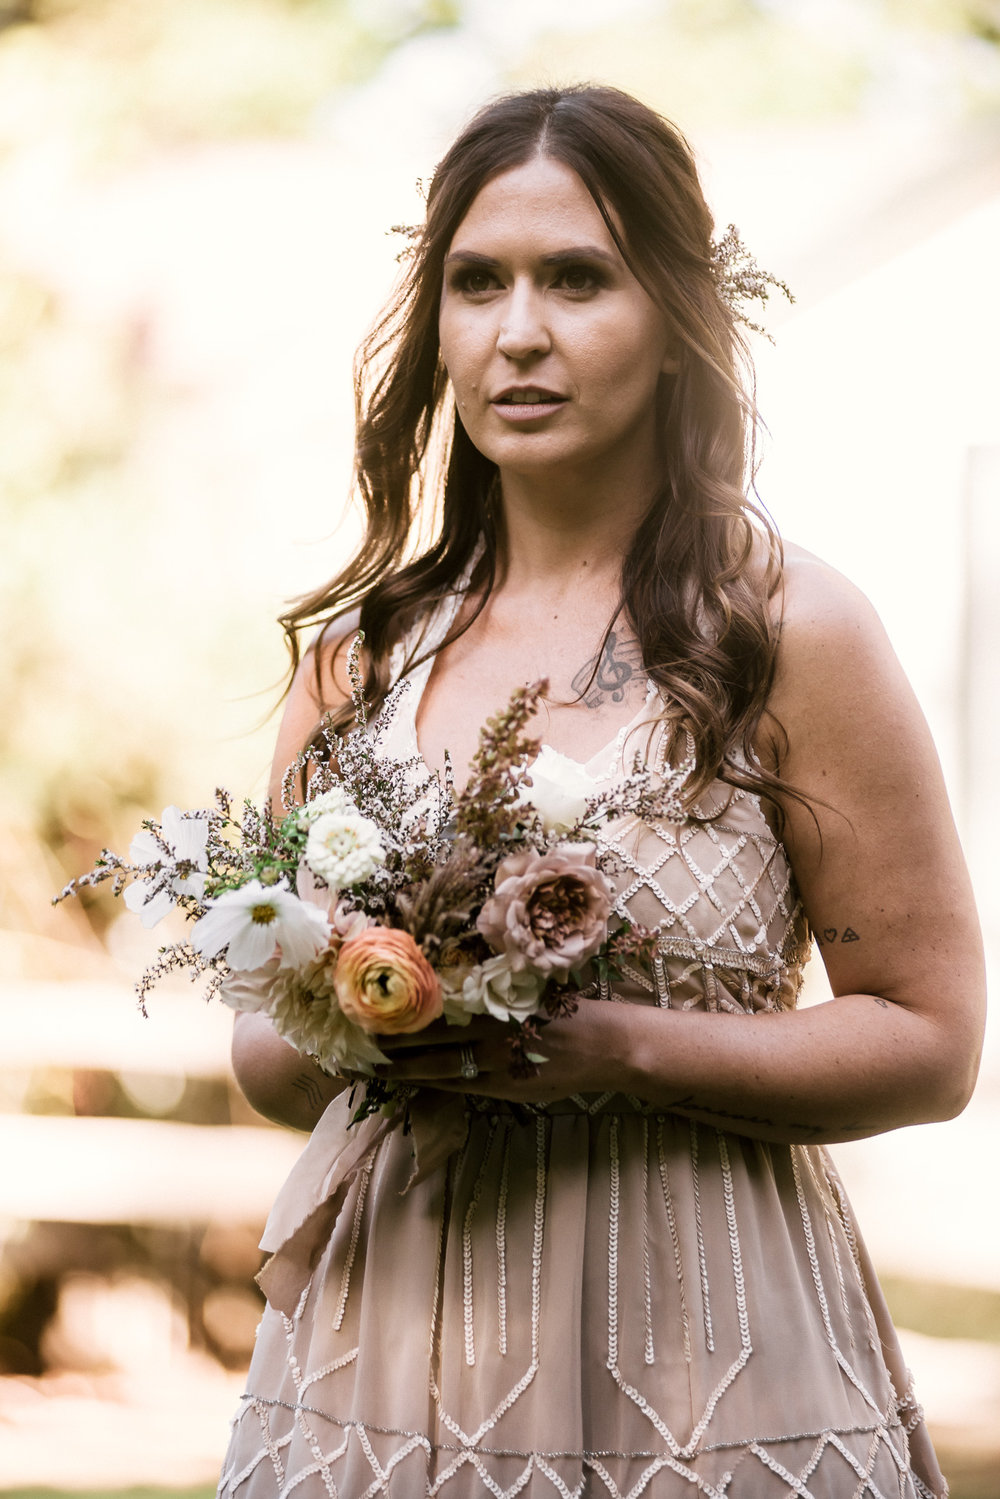 bridesmaid and her bouquet shot by wedding photographer at the charming St. George Hotel in Volcano California